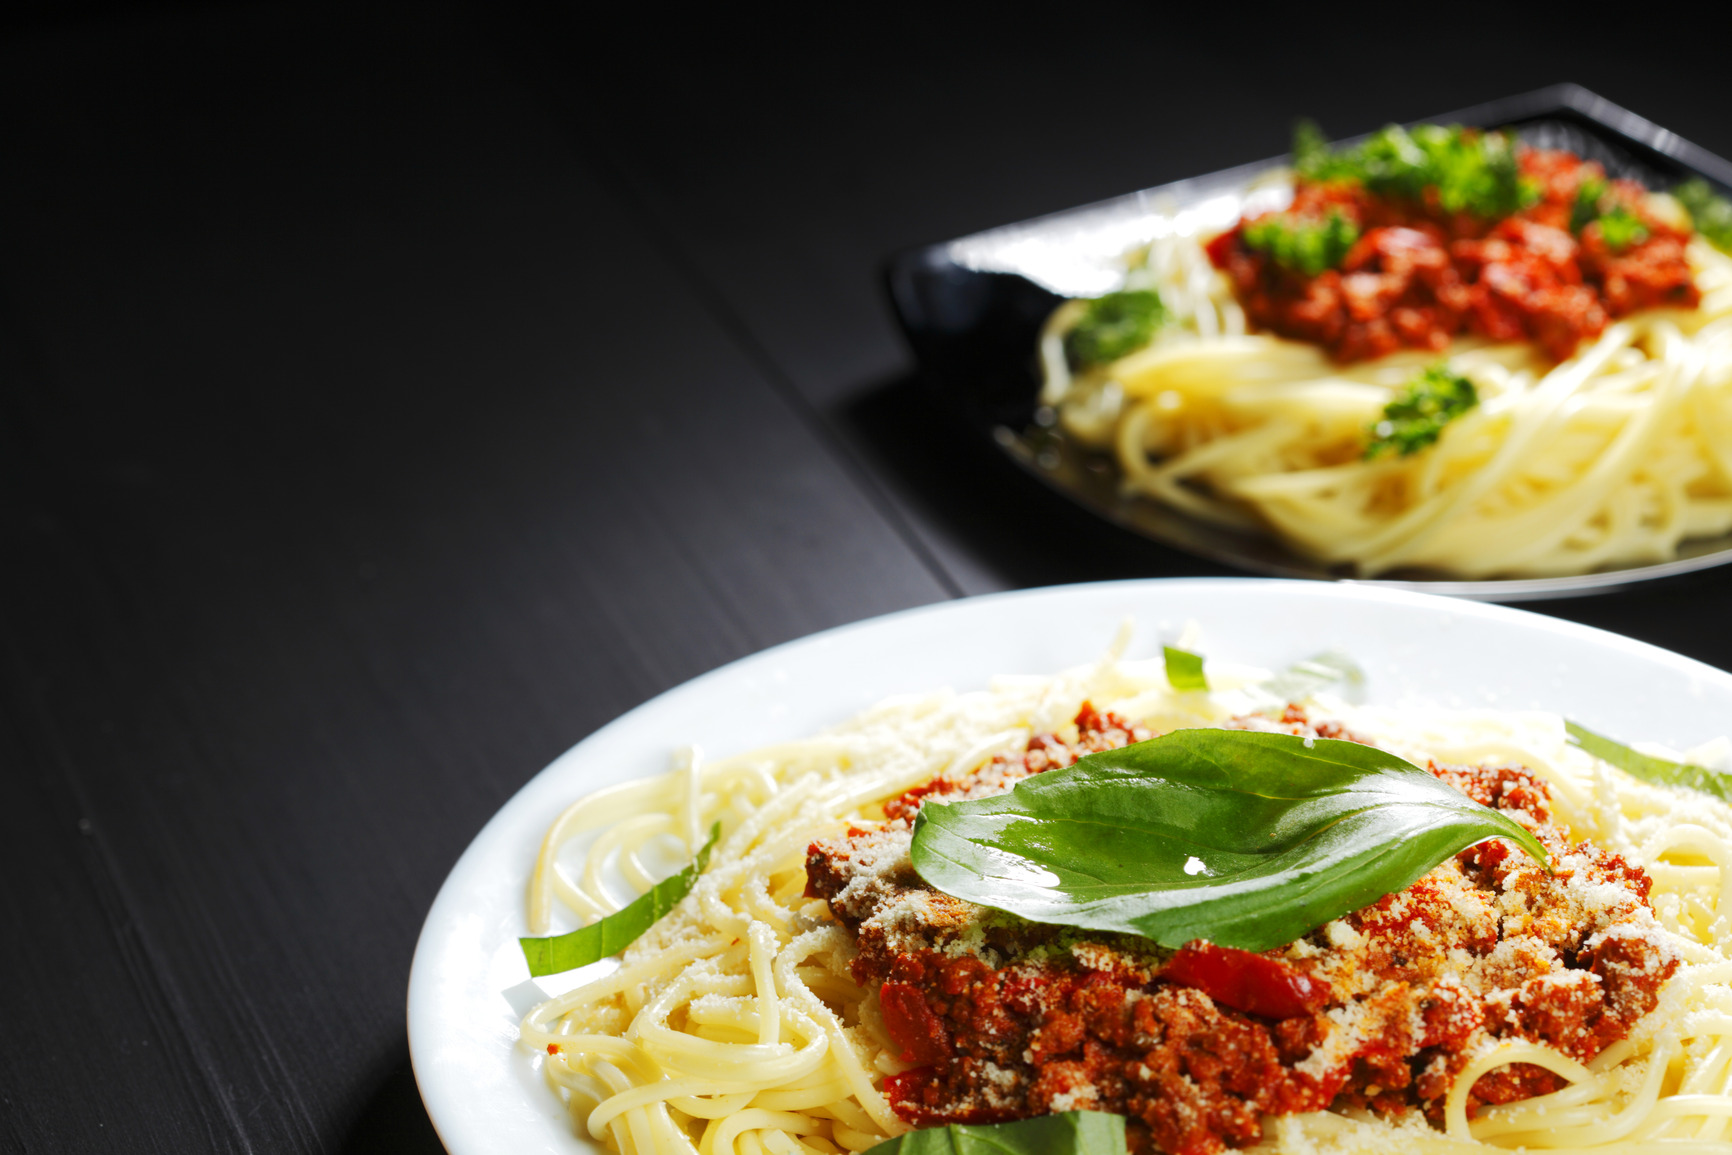 photodune-4874661-spaghetti-bolognese-with-basil-m1